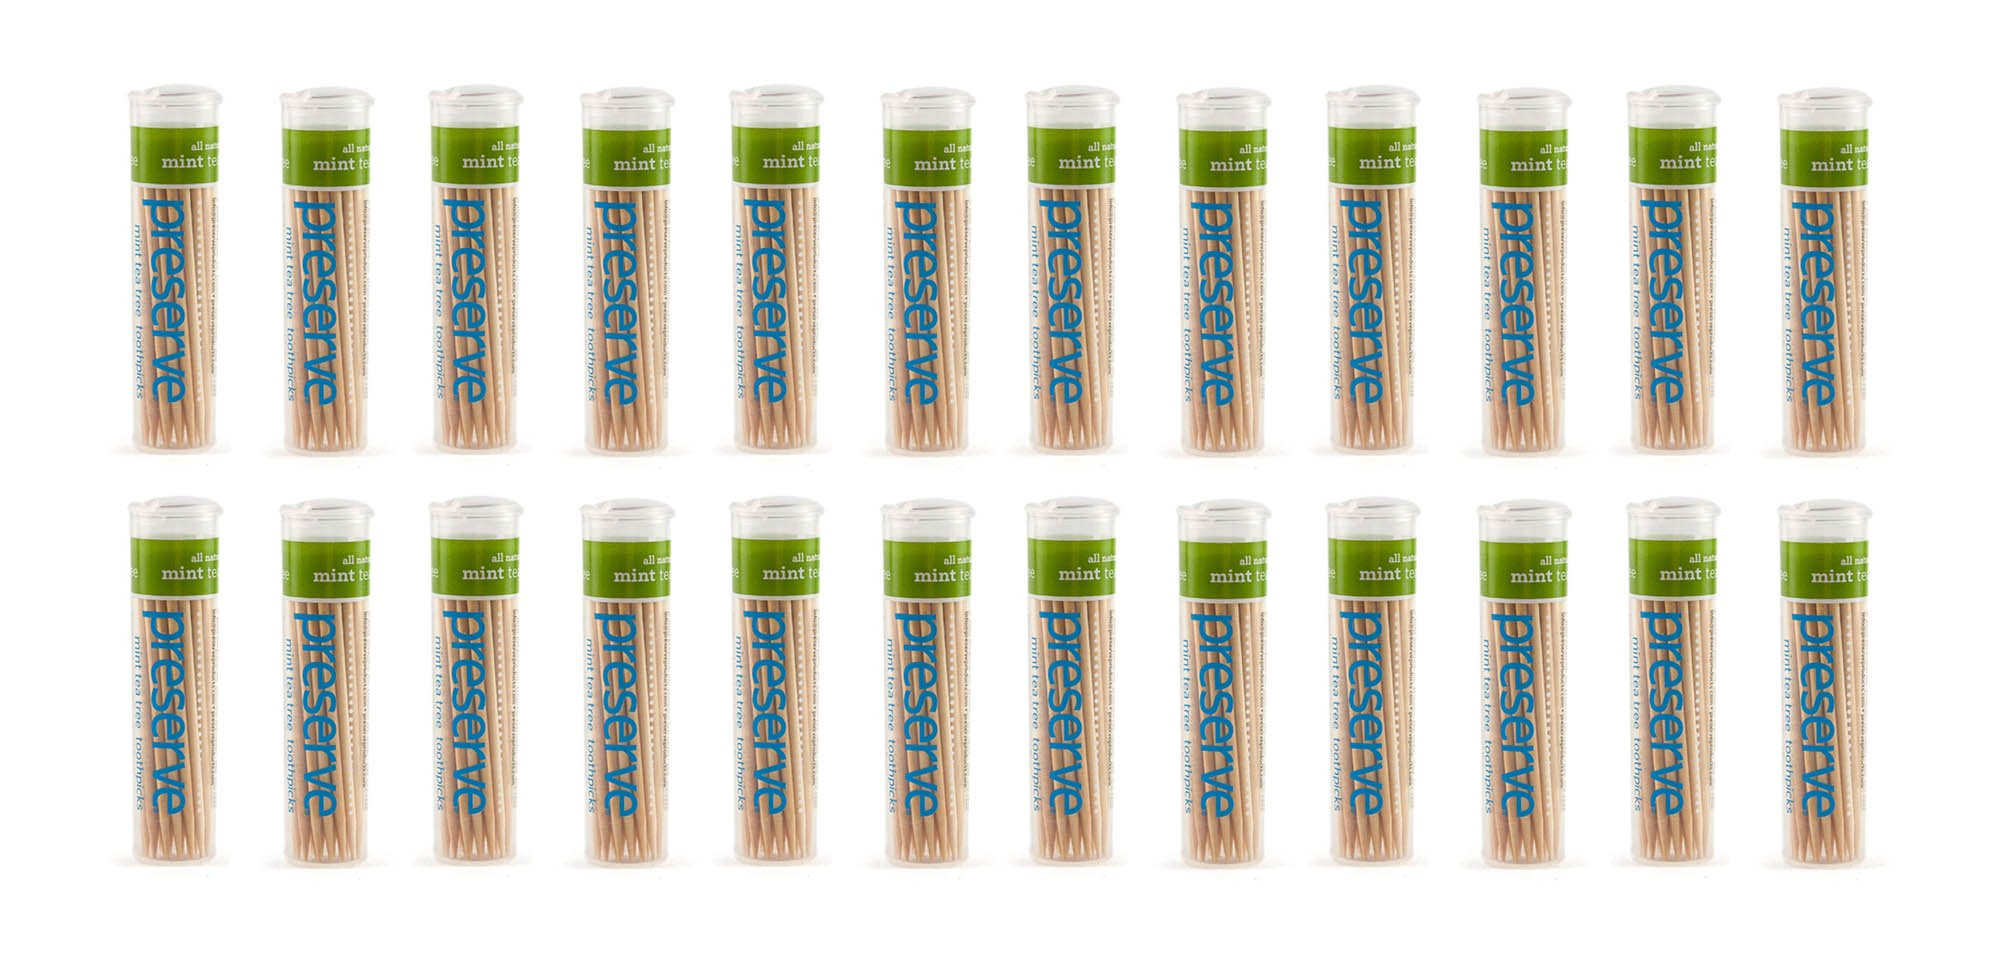 Preserve Toothpicks, Mint Tea Tree, 24 canisters